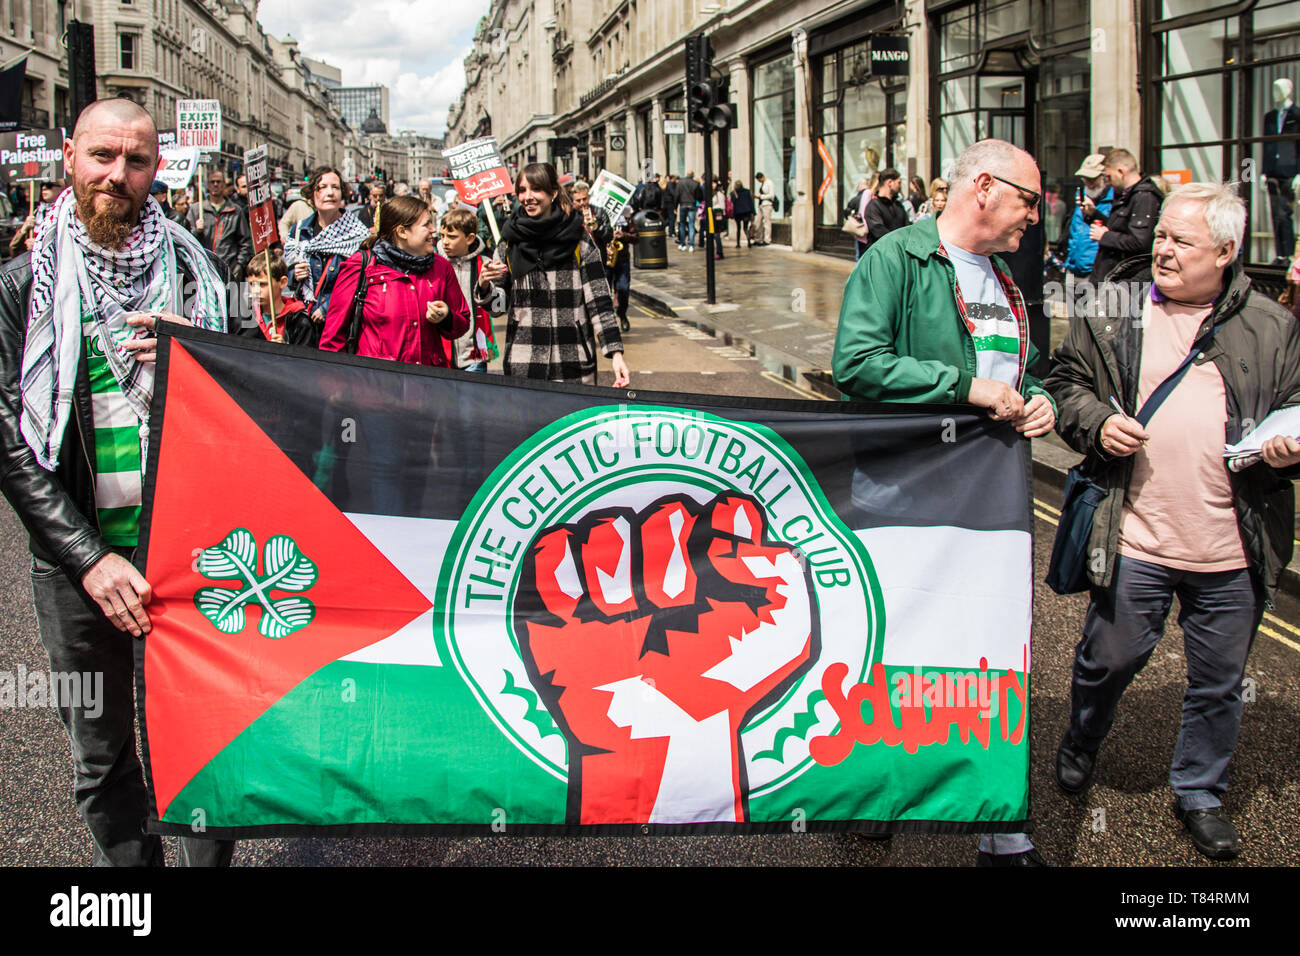 11 May, 2019. London,UK.  Celtic supporters join thousands marching for Palestine in a central London demonstration organised by the Palestinian Solidarity Campaign. David Rowe/ Alamy Live News - Stock Image